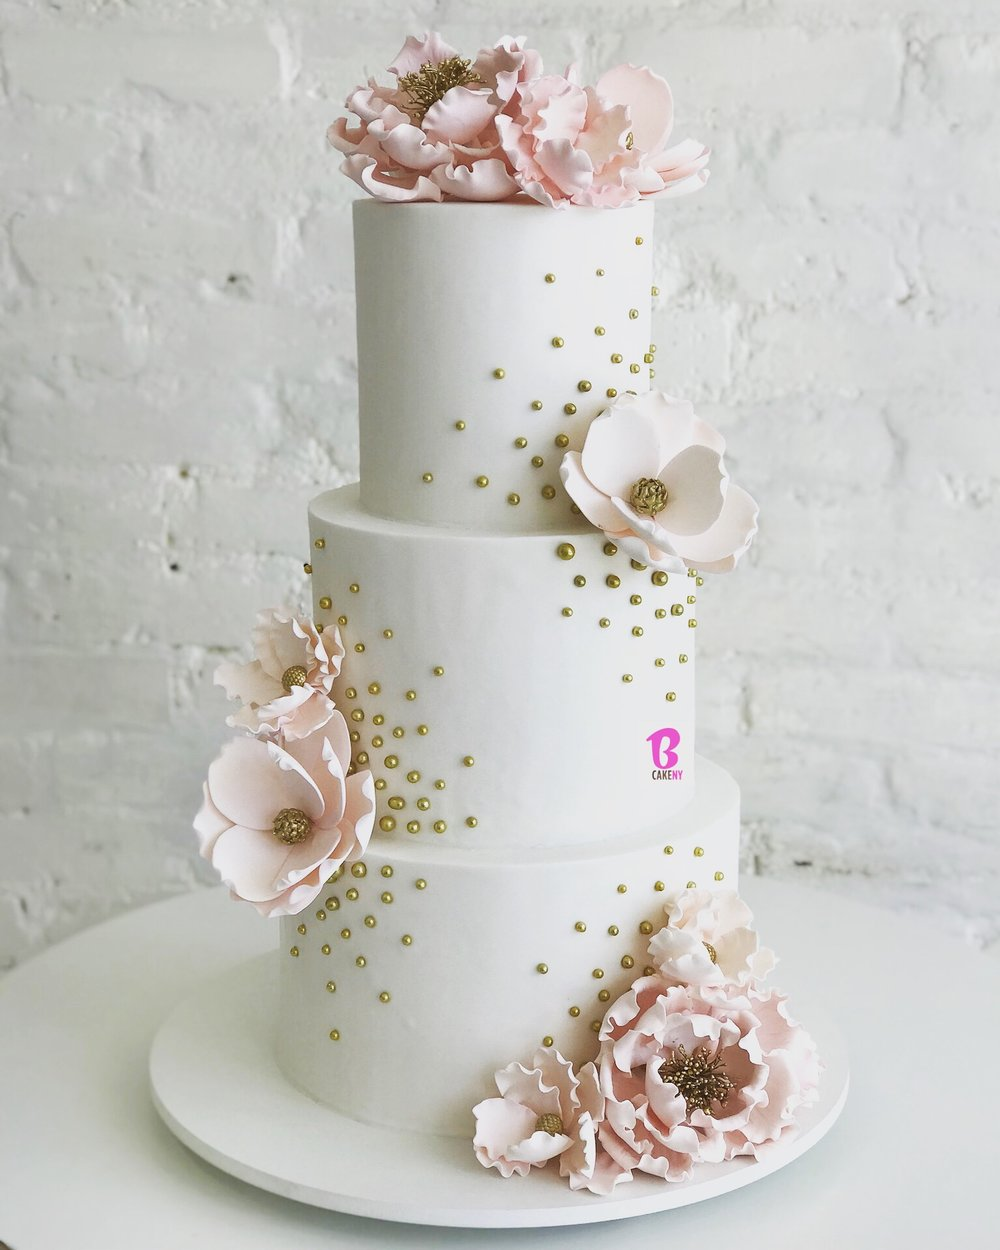 white fondant cake with sugar flowers